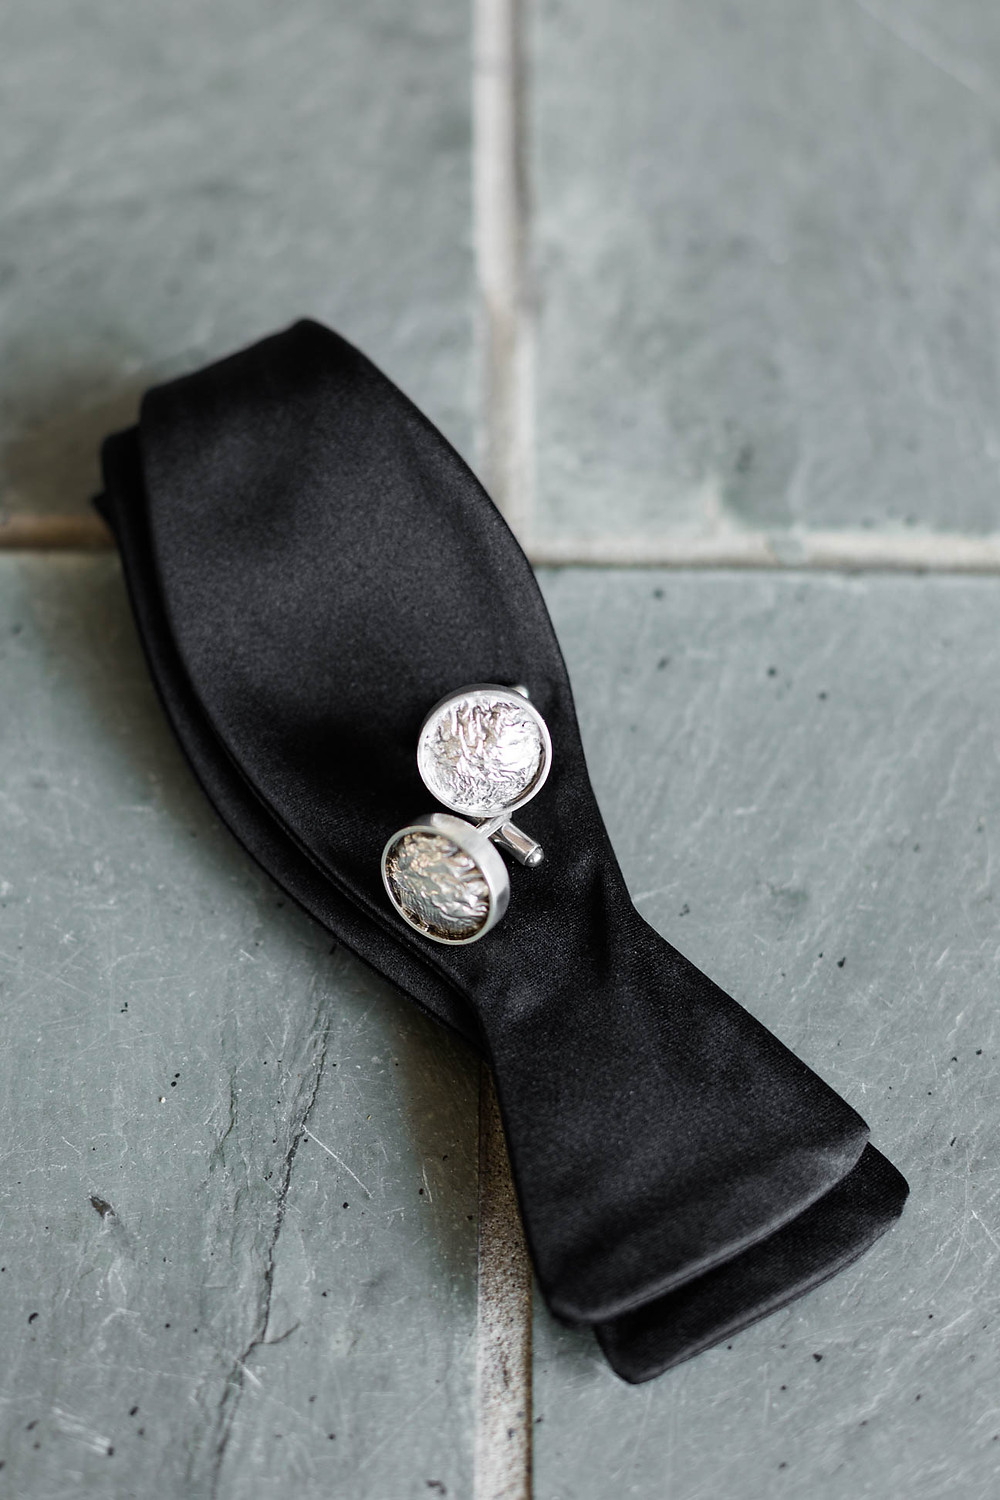 groom's bowtie and cufflinks for his wedding day tuxedo